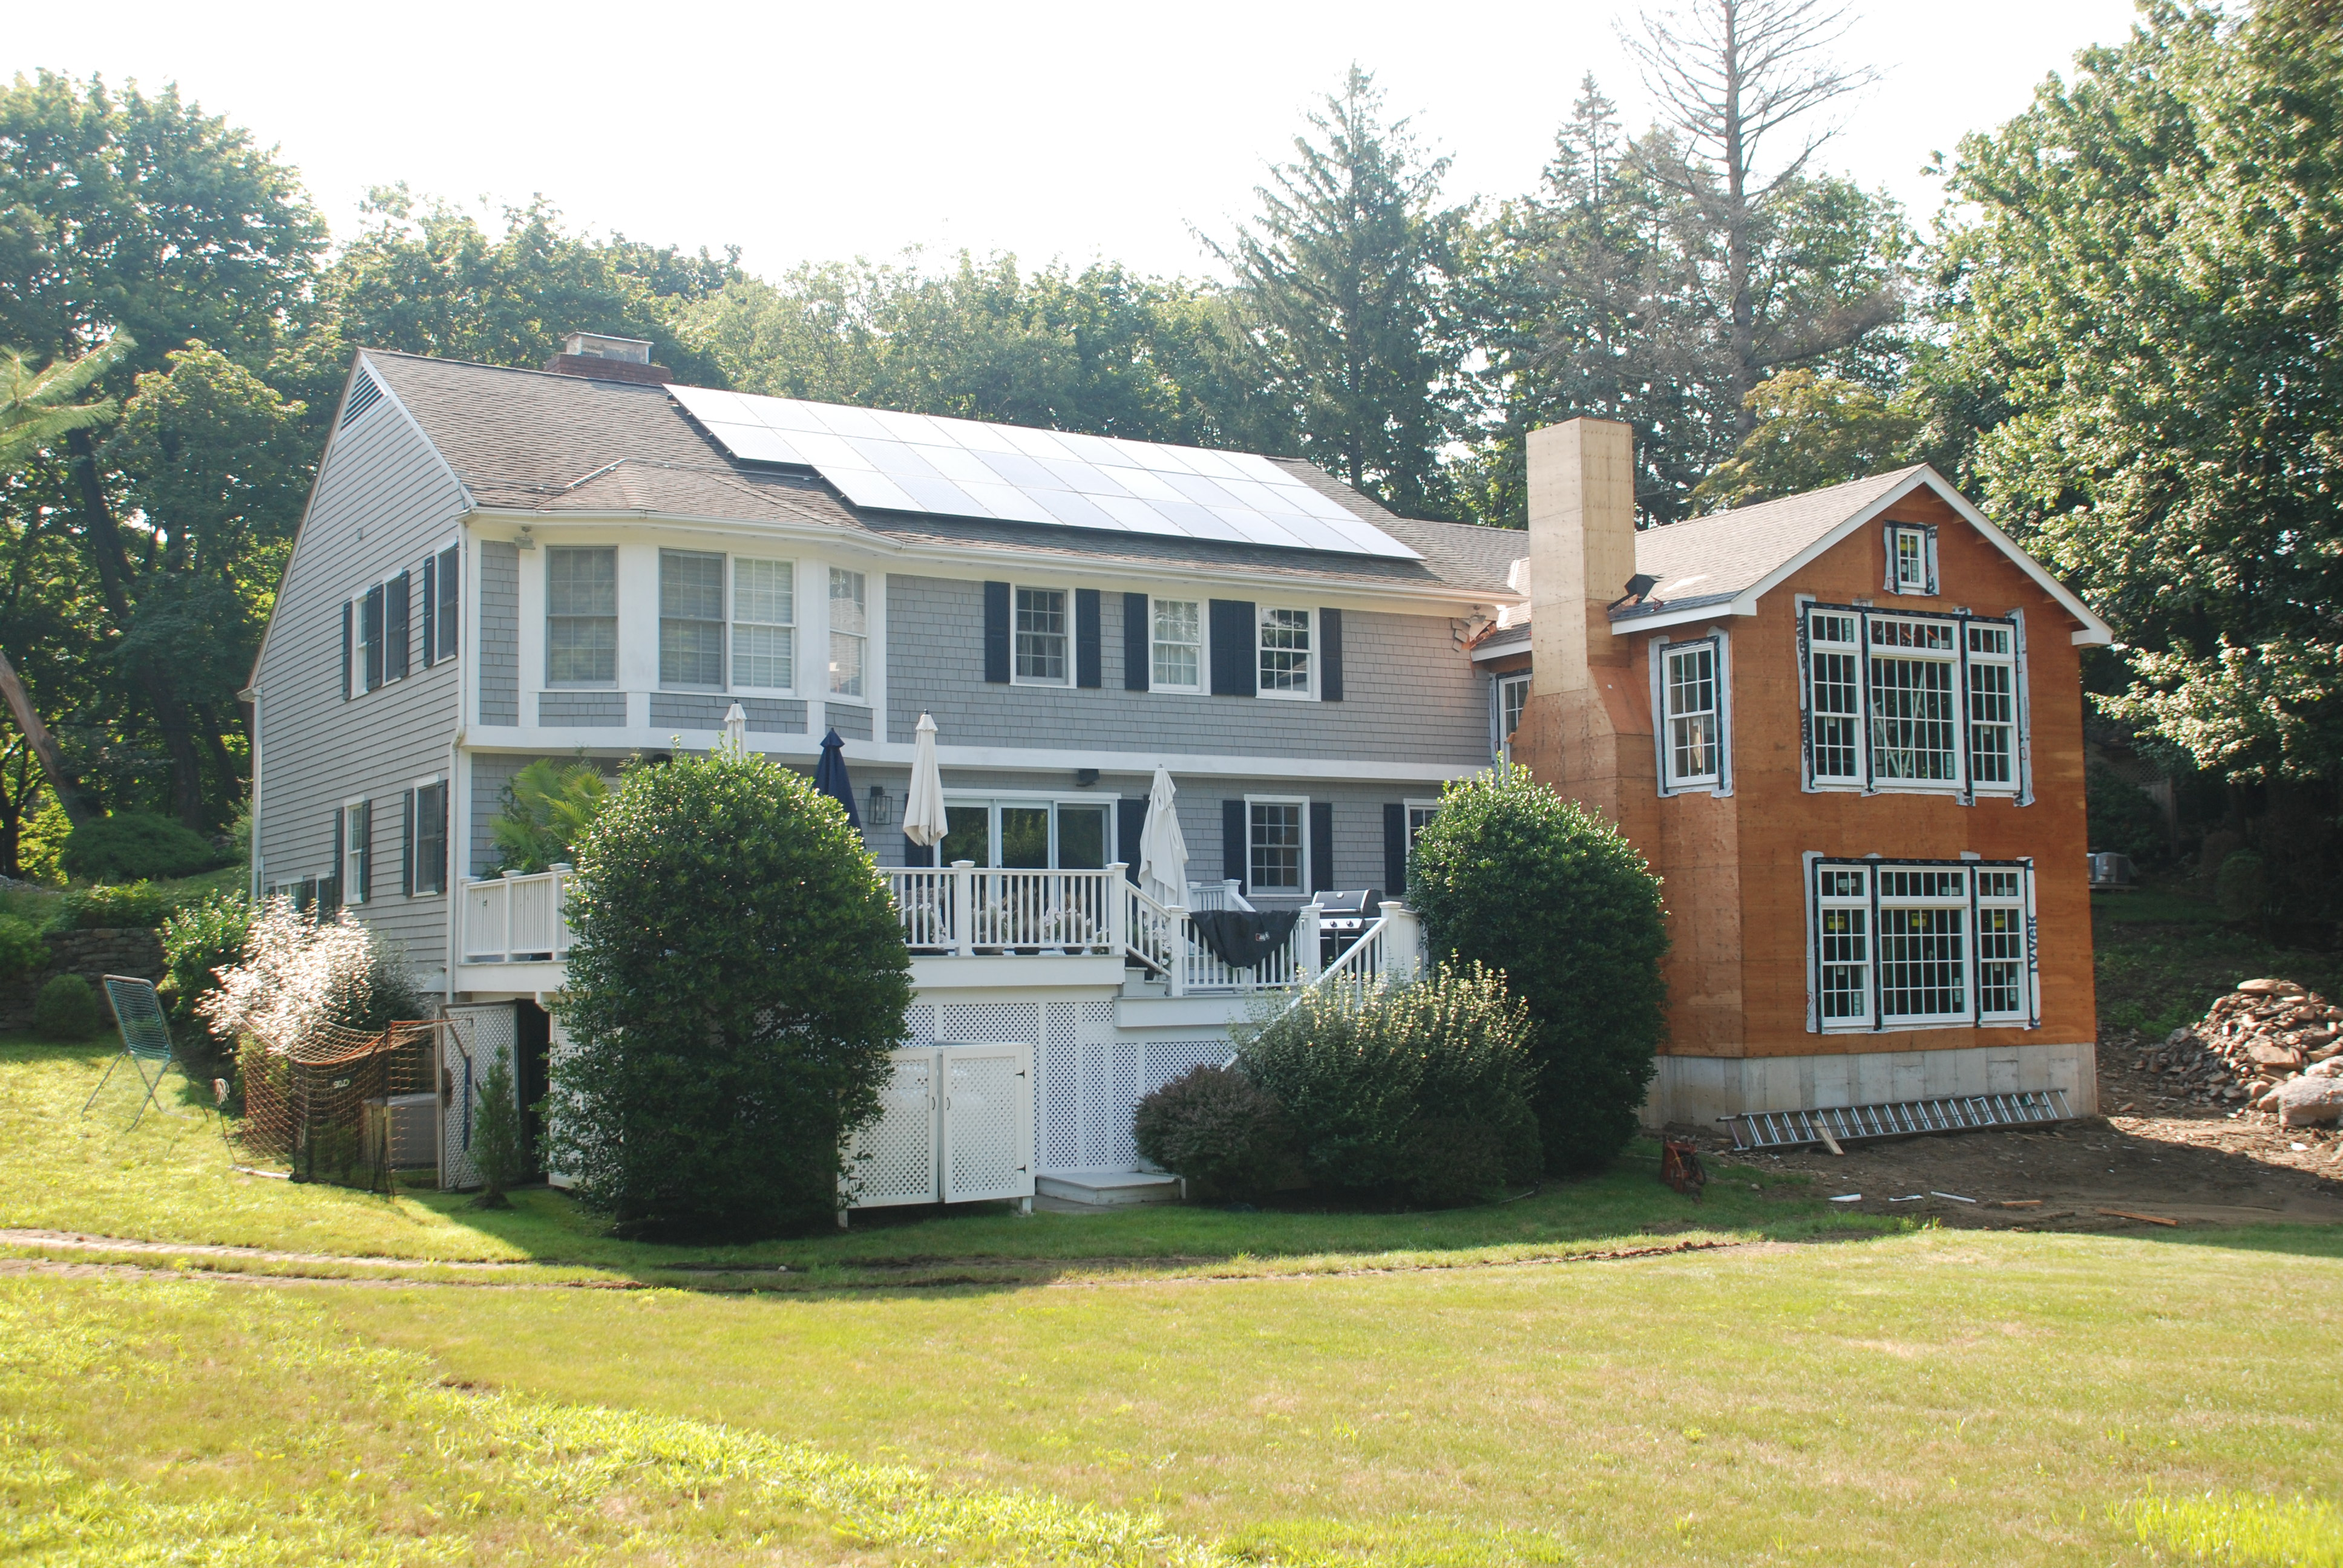 home after remodel exterior shown rye ny